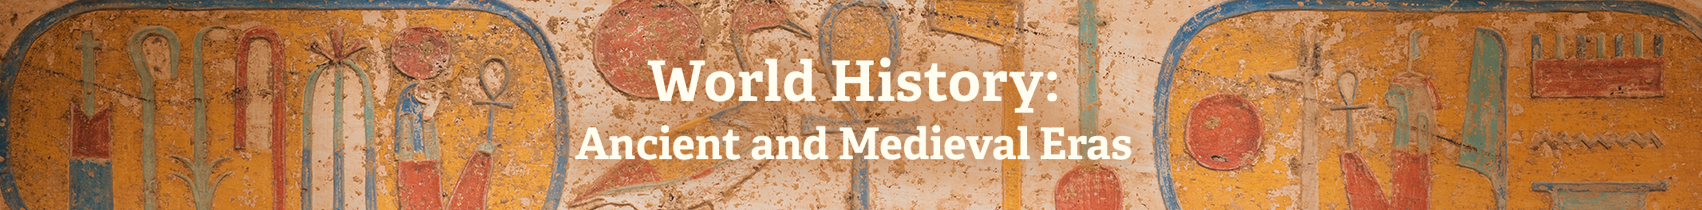 ABC-CLIO Solutions - World History: Ancient and Medieval Eras